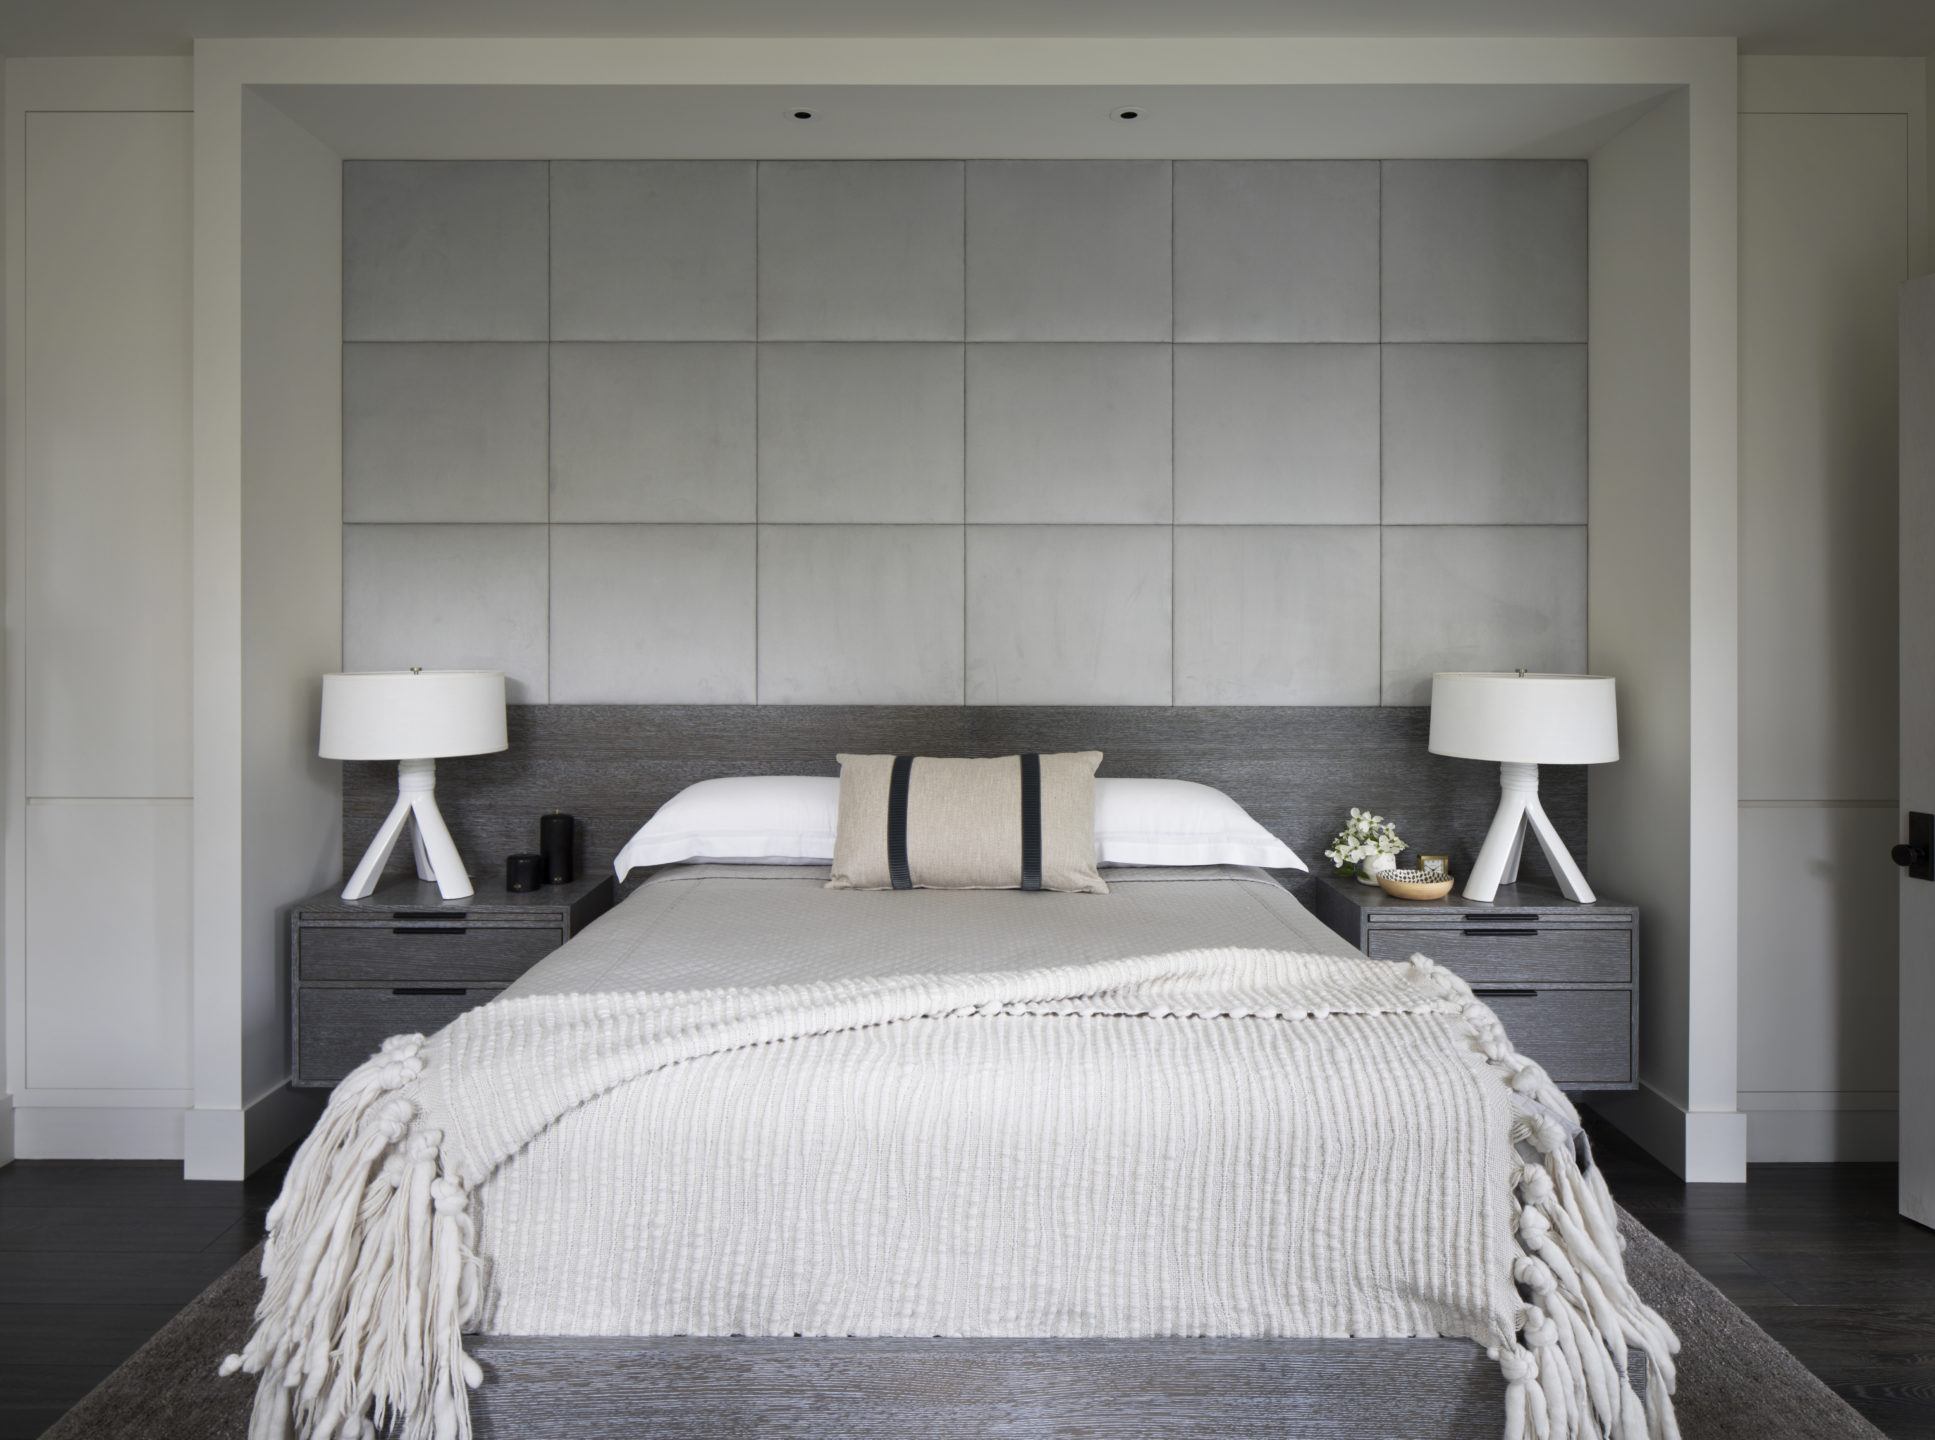 Jennifer_robins_interiors_projects_downtown_sonoma_6_bedroom_bed_BR